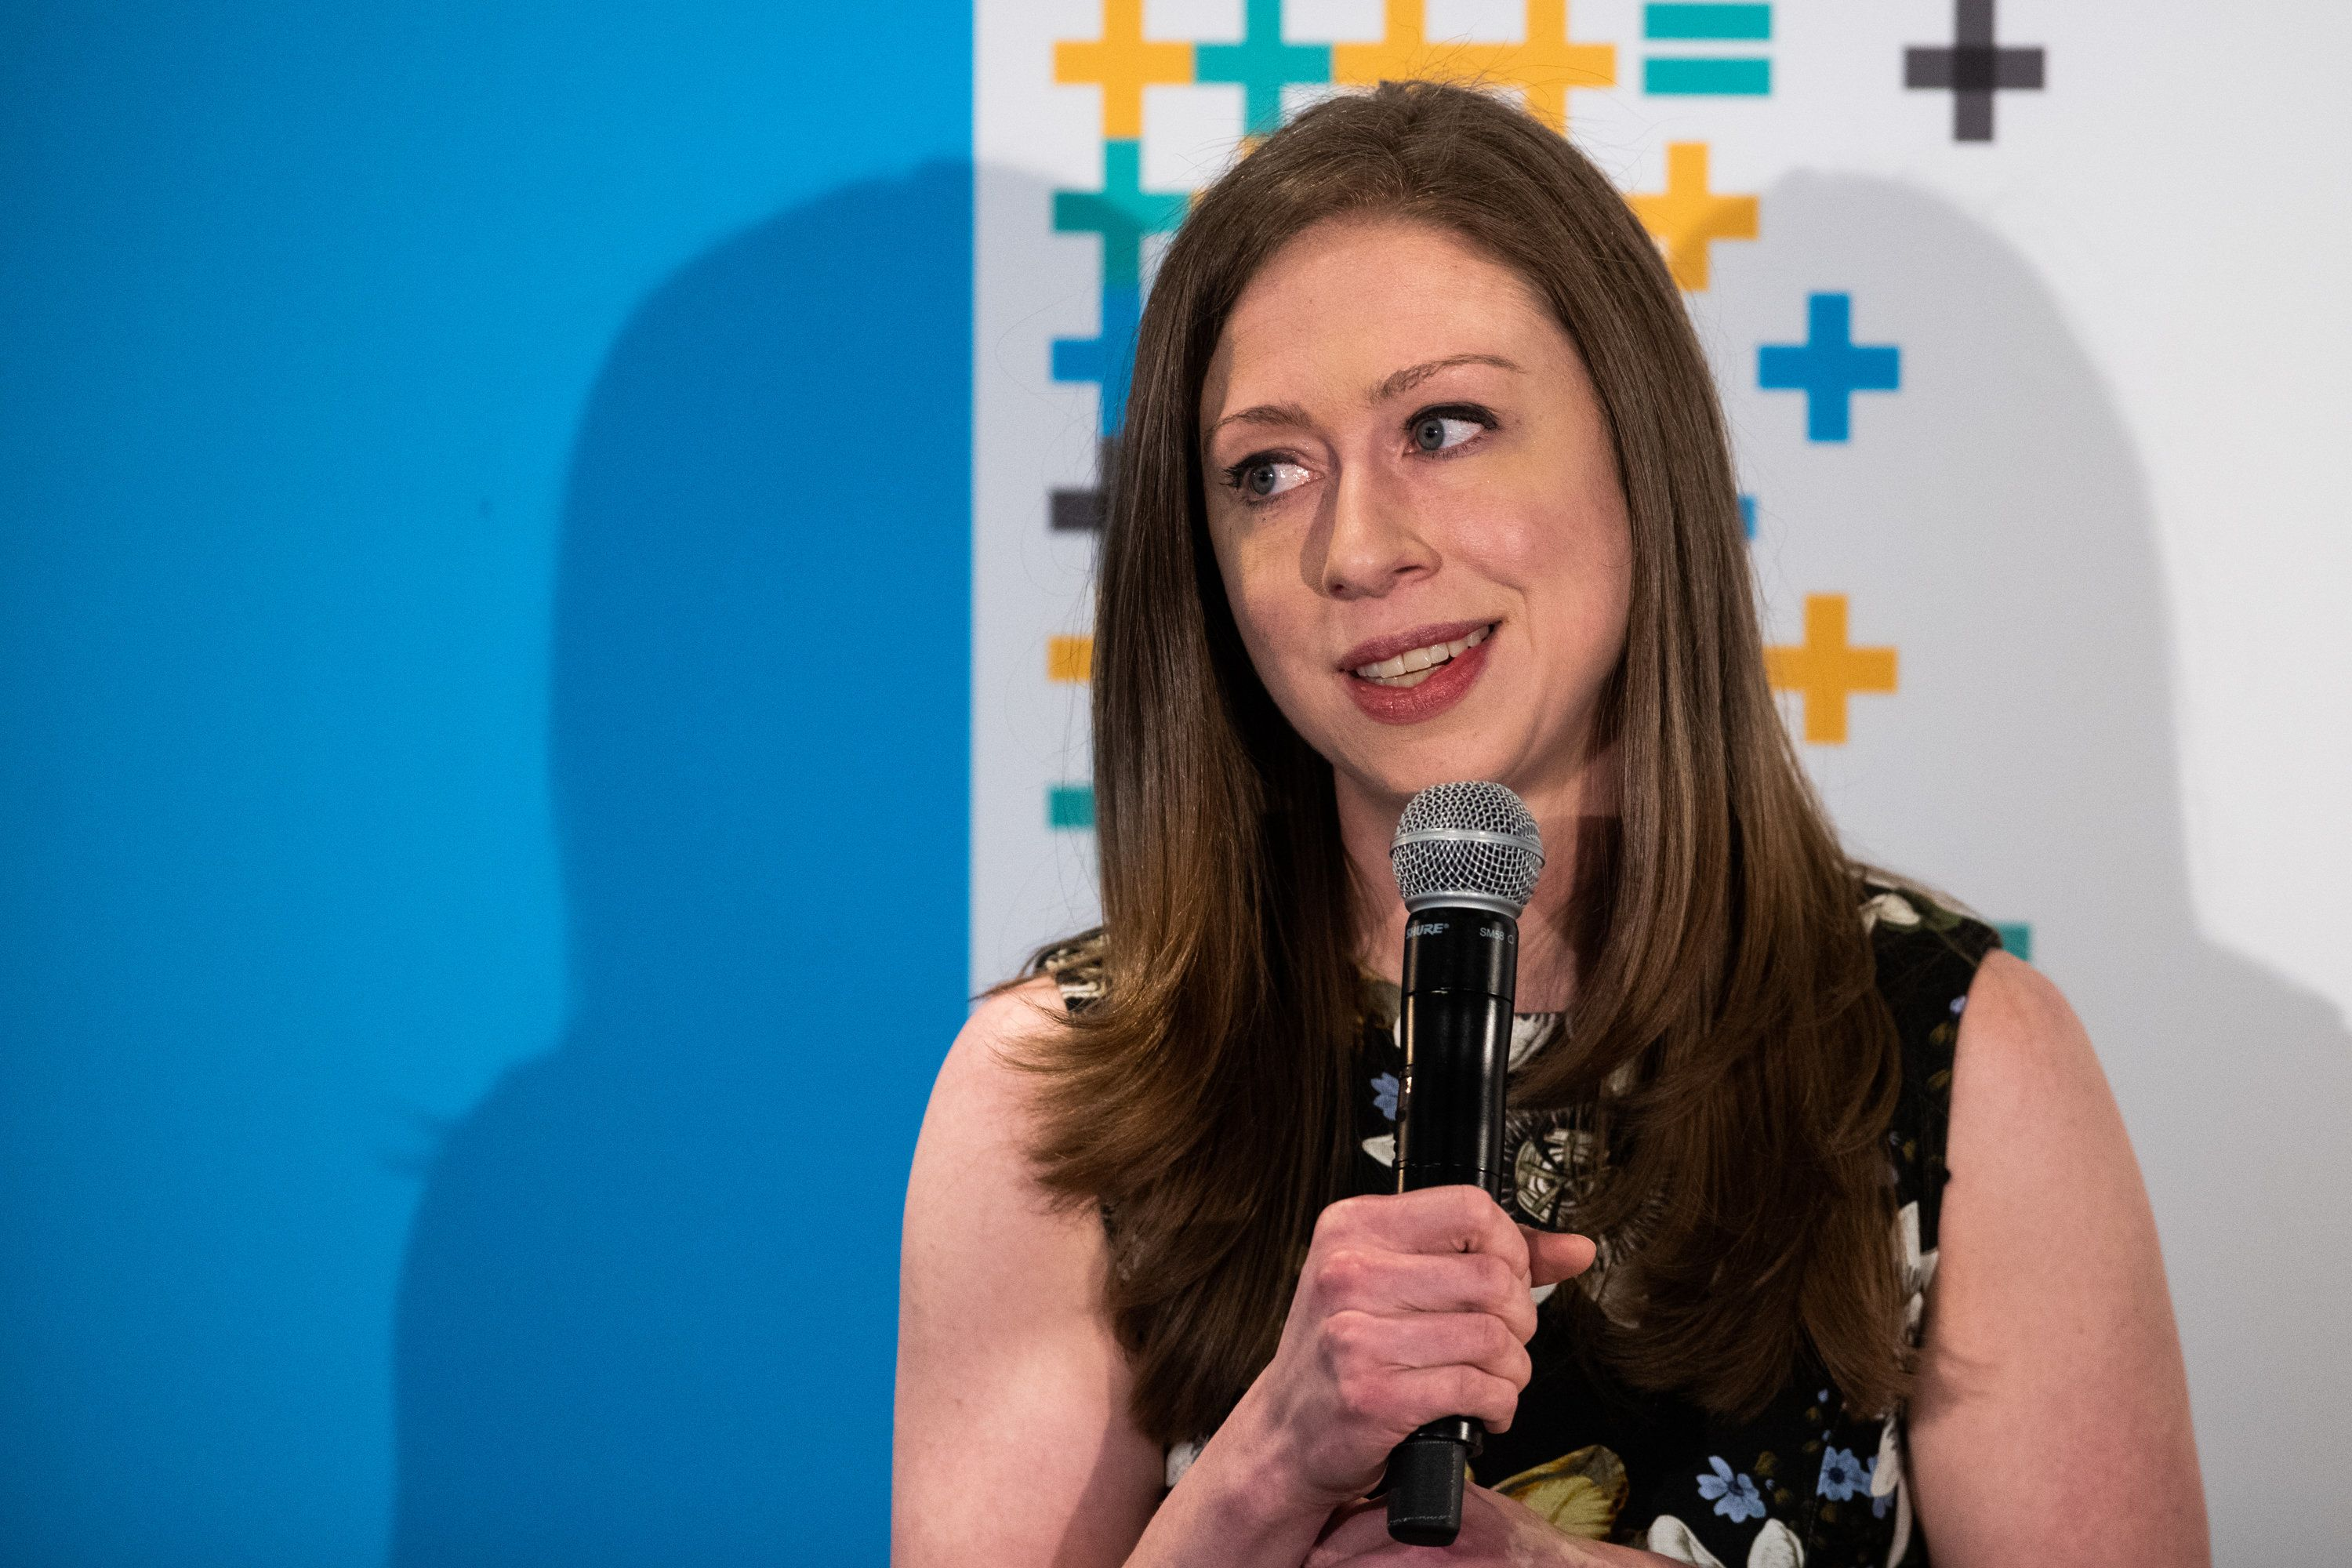 Chelsea Clinton, vice chairman of the Clinton Foundation, speaks during the Bloomberg Business of Equality conference in New York, U.S., on Tuesday, May 8, 2018. The conference brings together business, academic and political leaders as well as nonprofits and activists to discuss the future of equality, how we get there and what is at stake for the economy and society at-large. Photographer: Mark Kauzlarich/Bloomberg via Getty Images